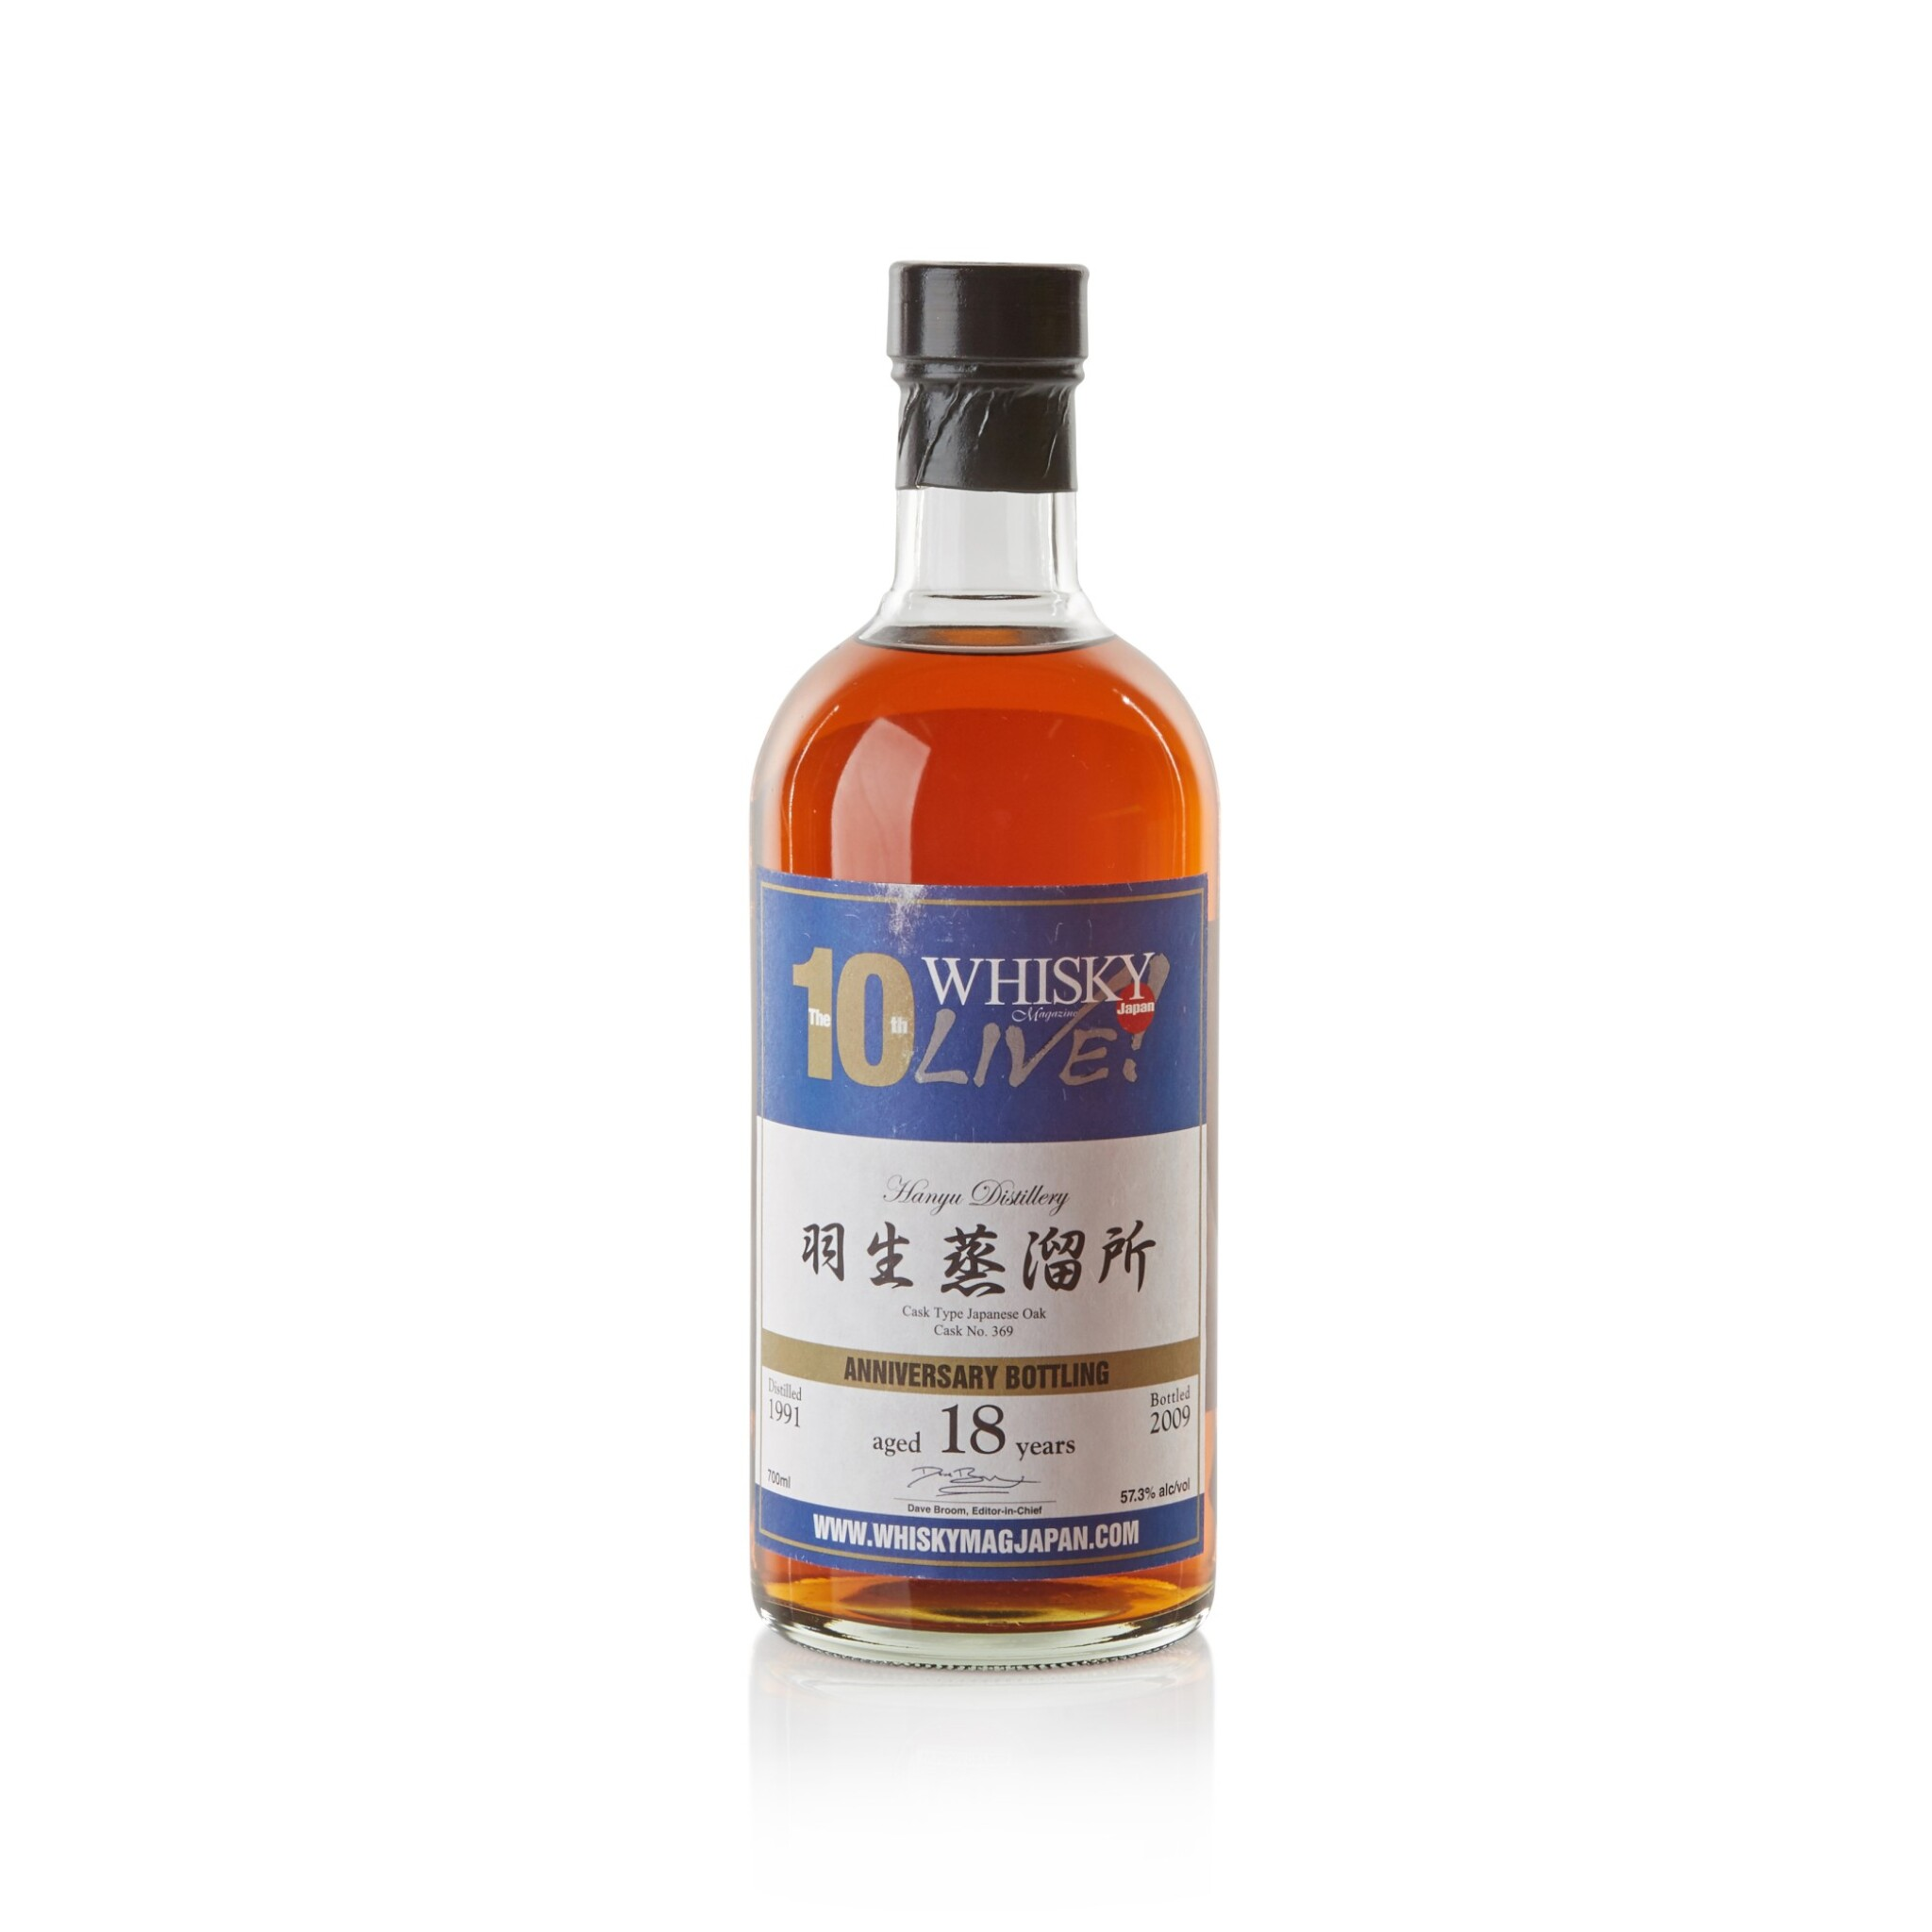 View full screen - View 1 of Lot 206. Hanyu 18 Year Old Whisky Magazine Live Japan 2010 cask #369 57.3 abv 1991 .